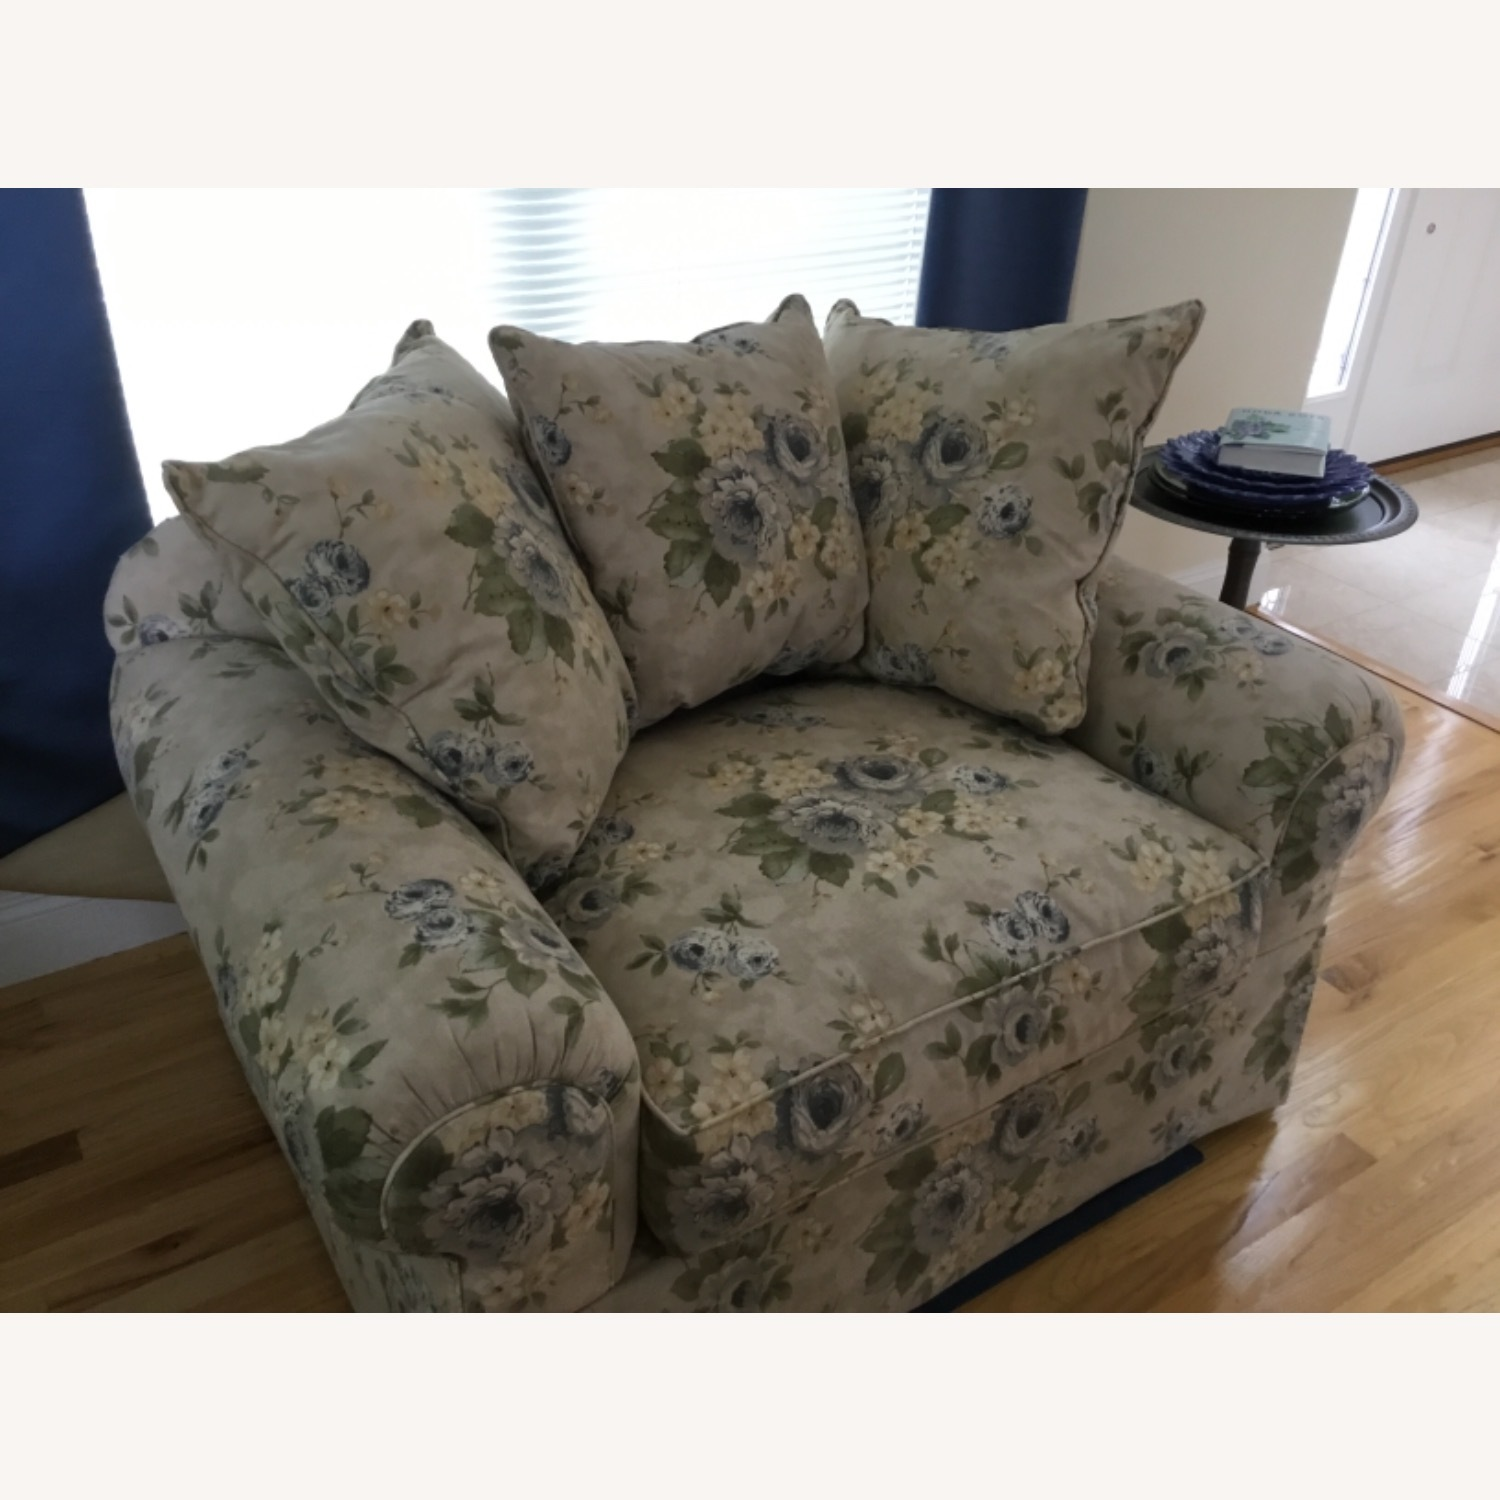 Wayside Furniture Oversized Chair - image-4